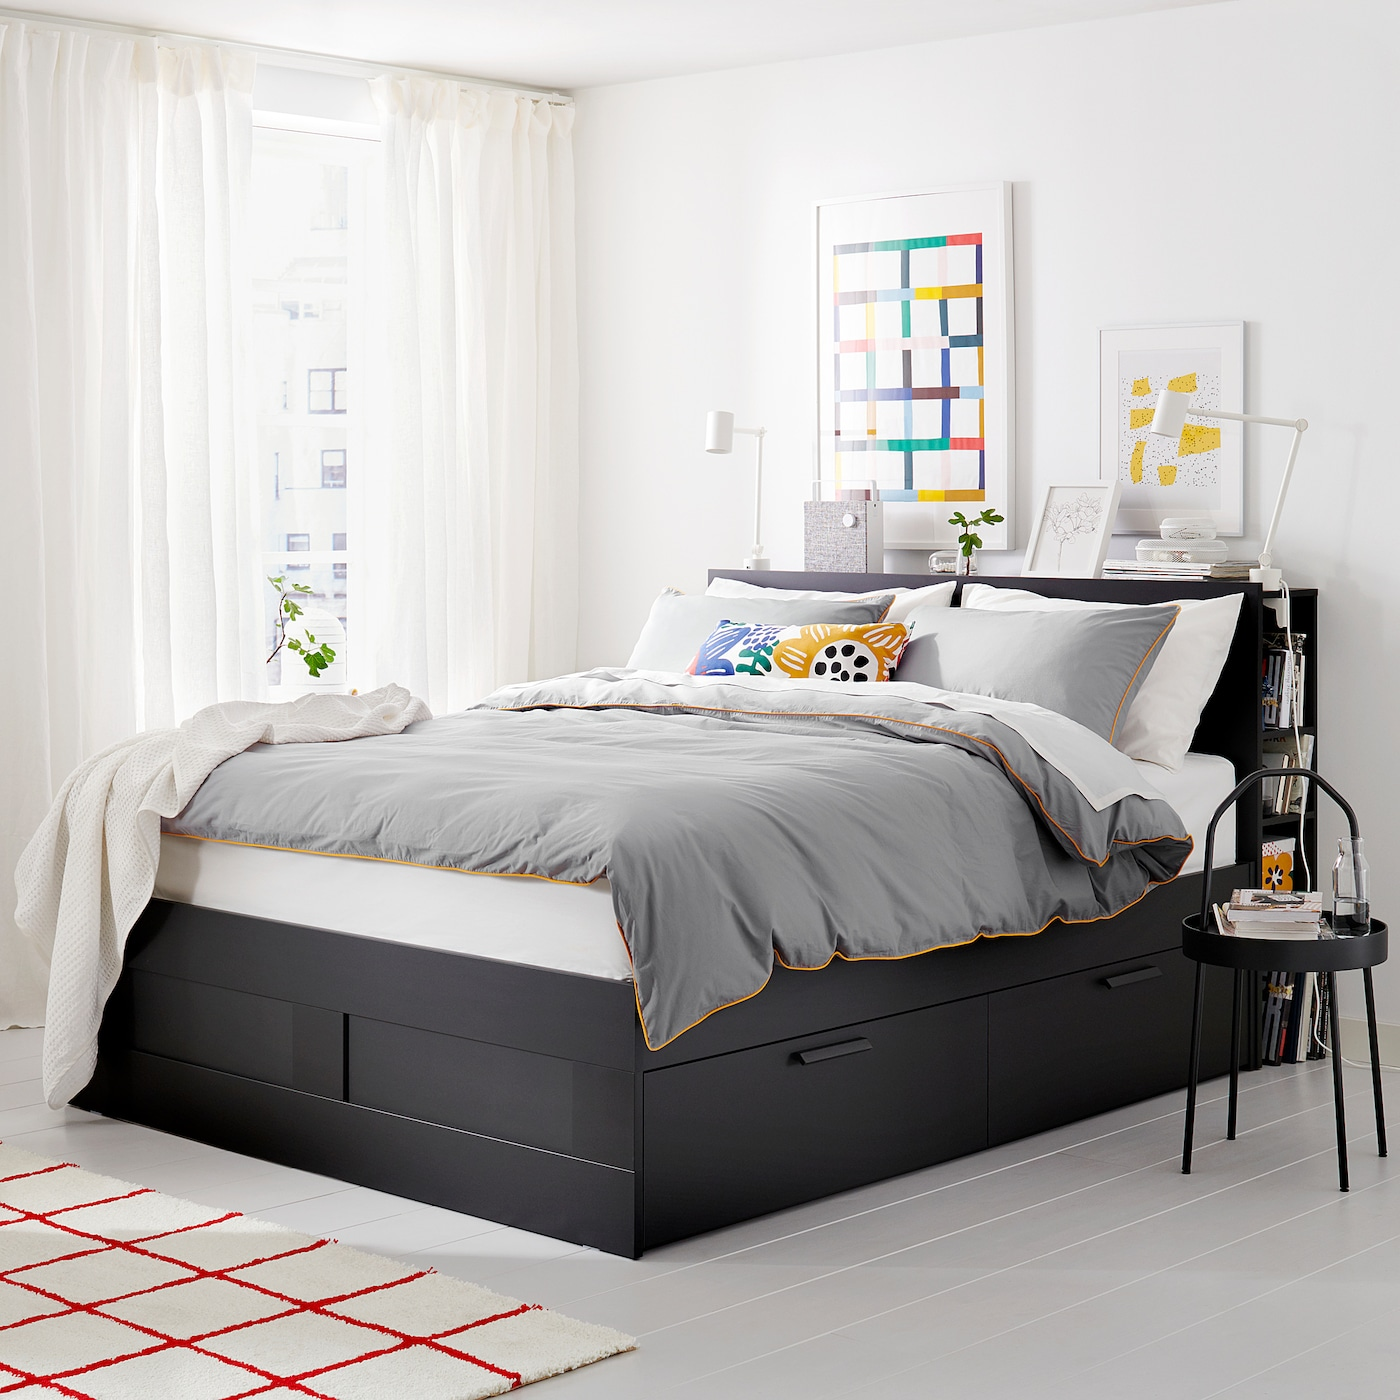 Brimnes Bed Frame With Storage Headboard Black Queen Ikea